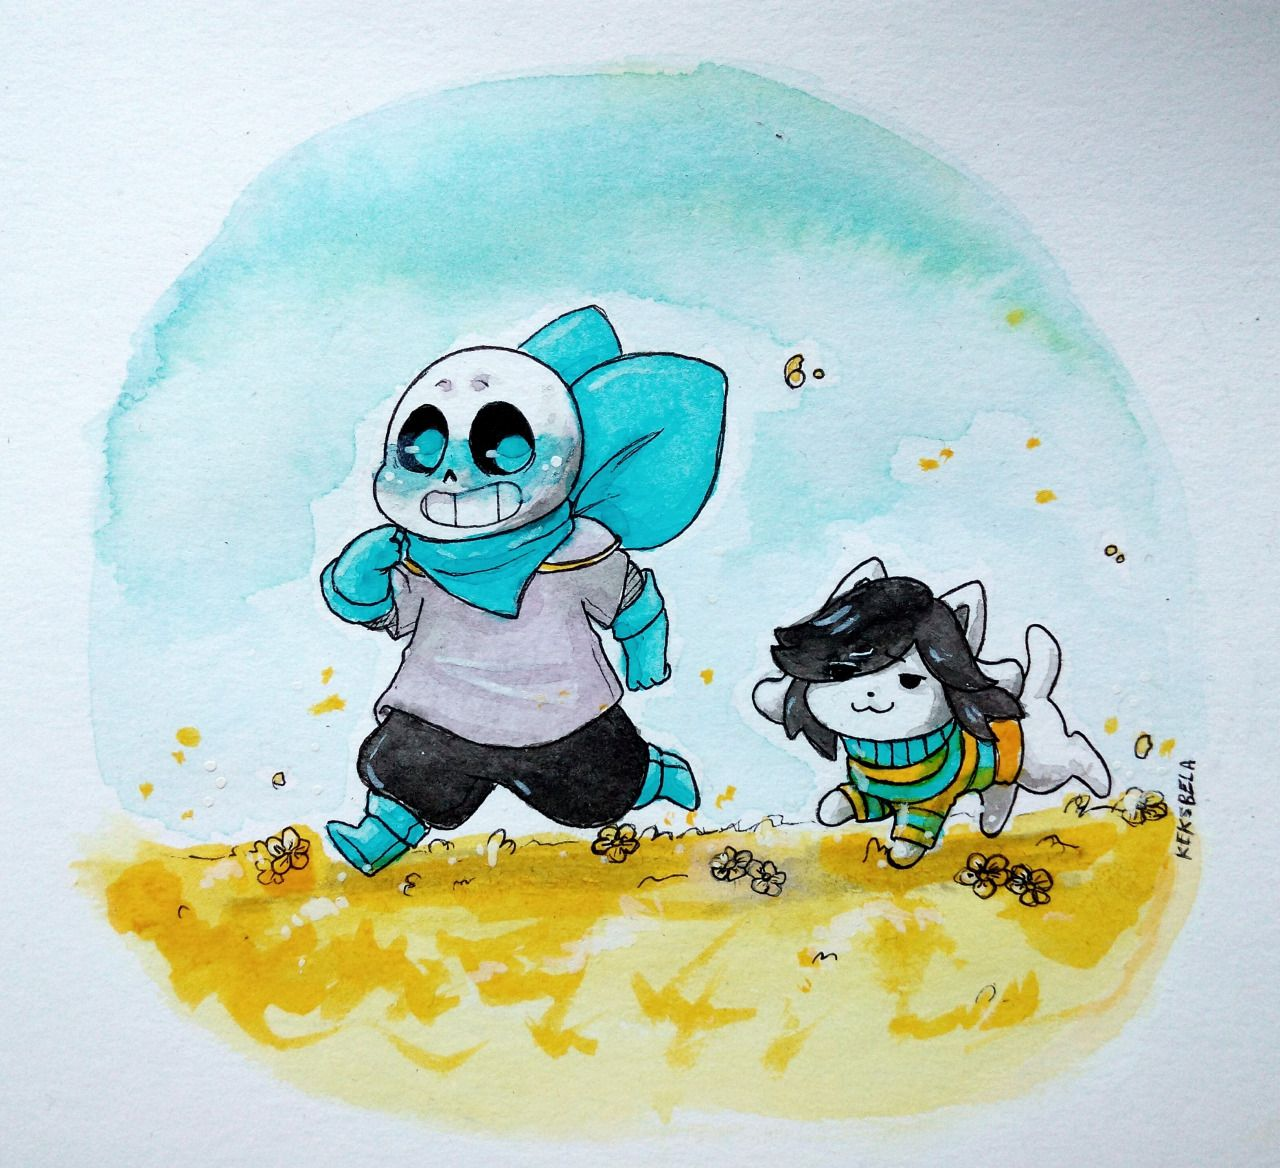 my first try with watercolors QwQ  Underswap Sans and Temmie ❤